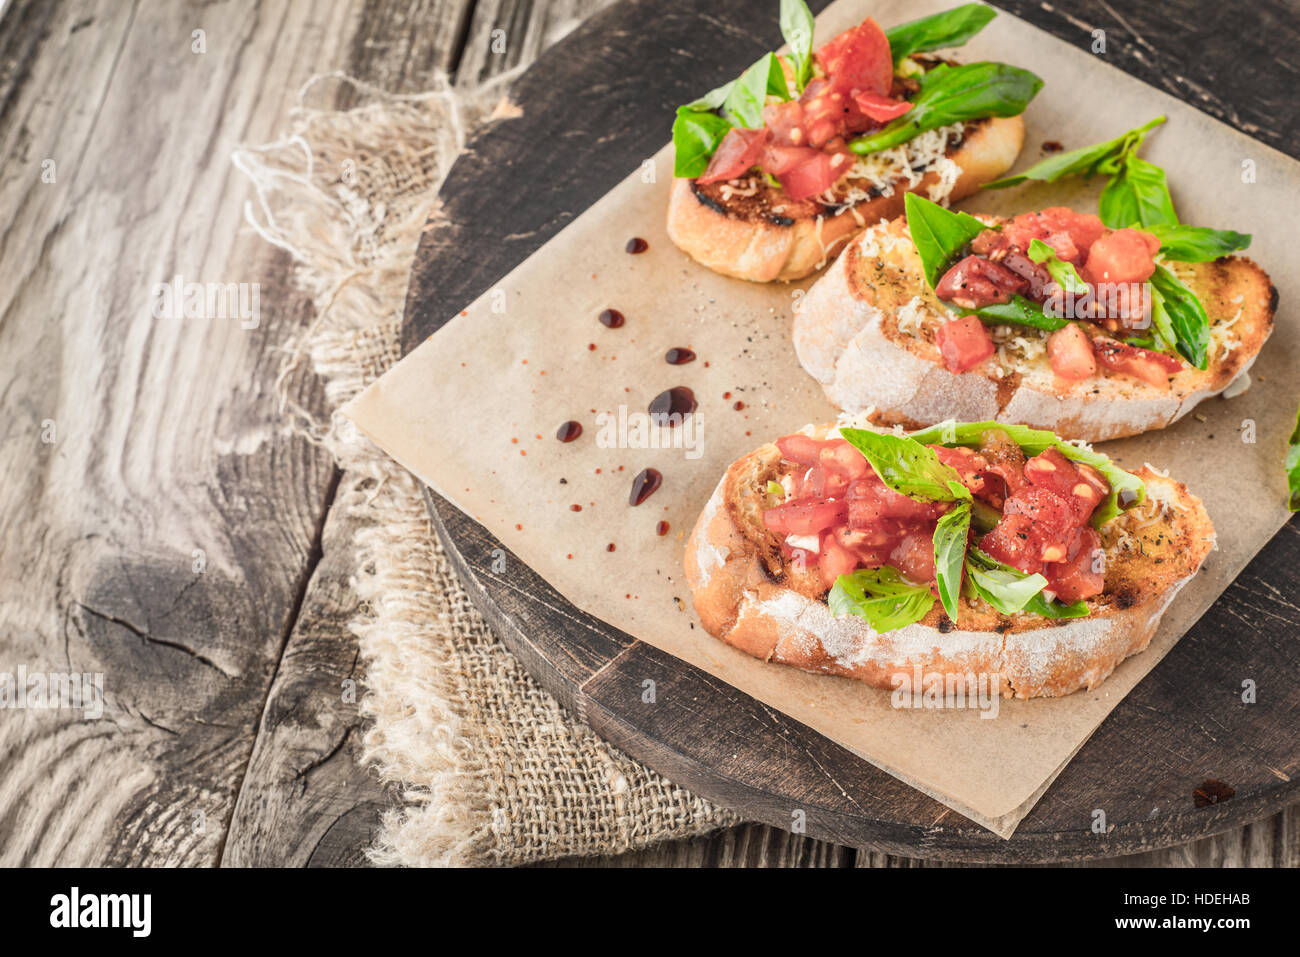 tomato basil bread seasoning vegetable board food - Stock Image